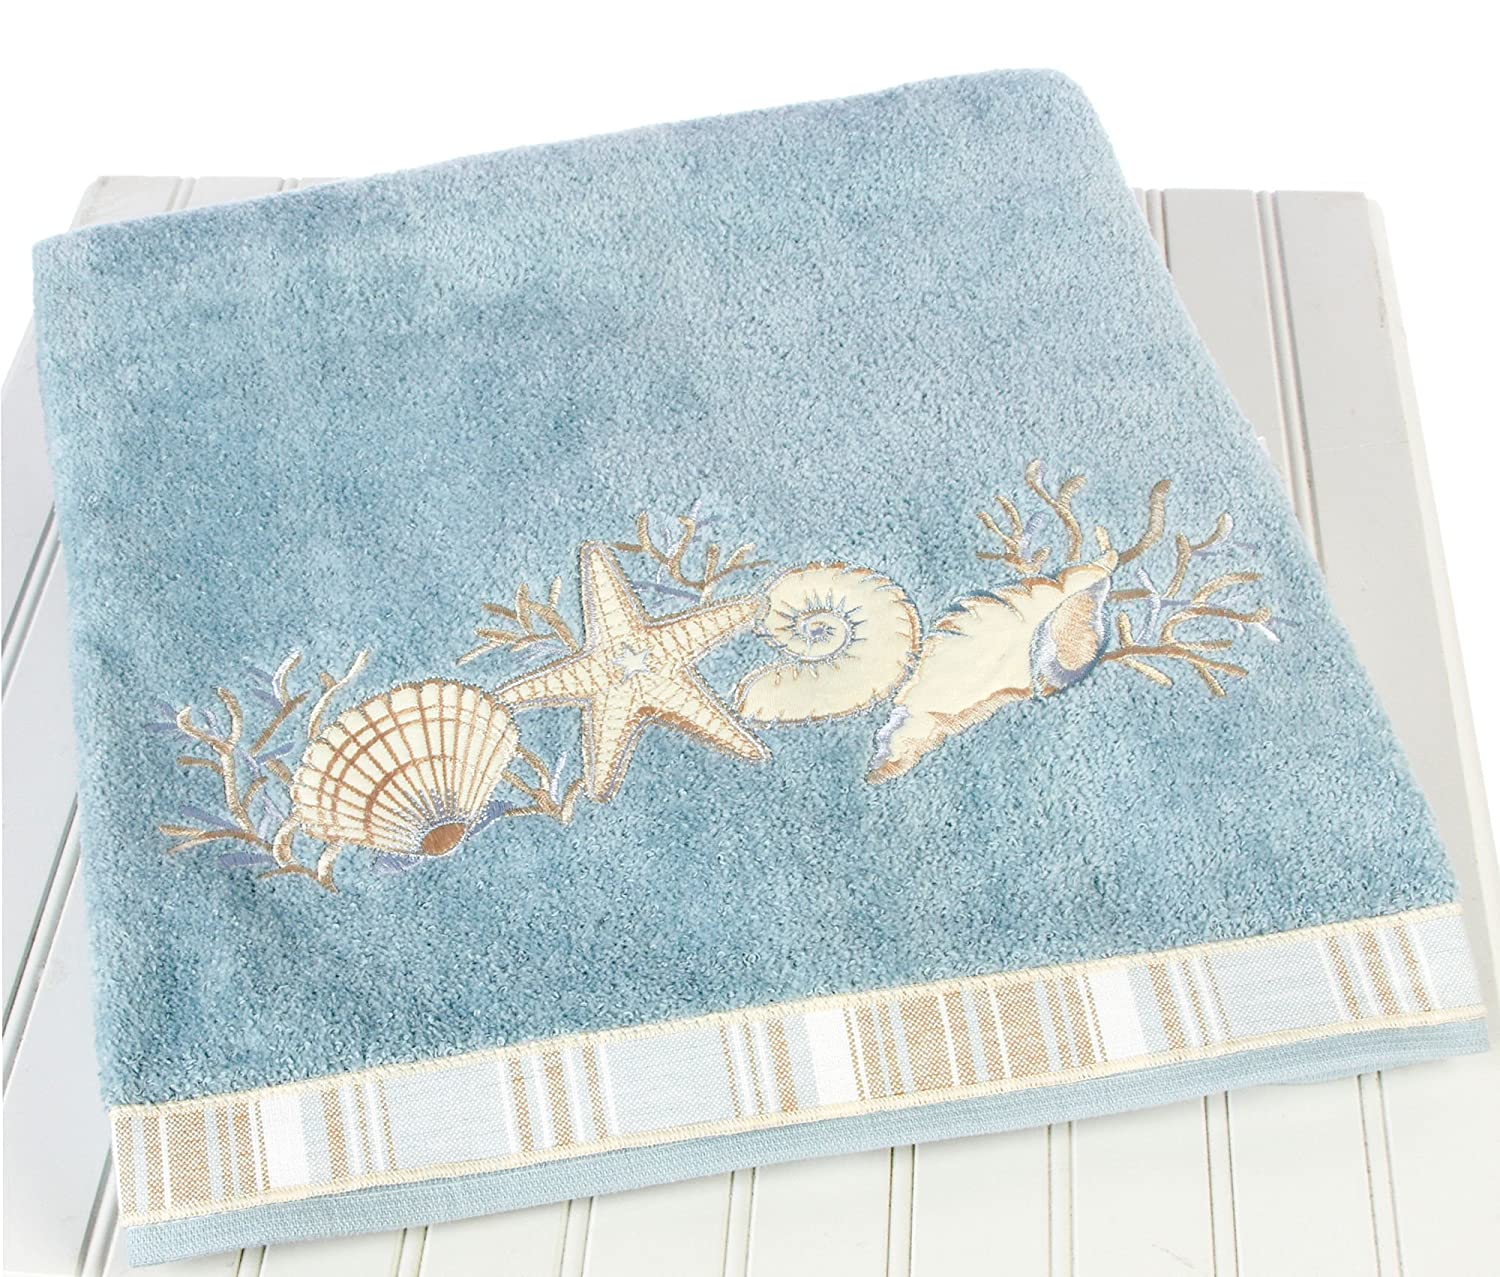 Nautical rugs for bathroom - Wrap Text Around Image